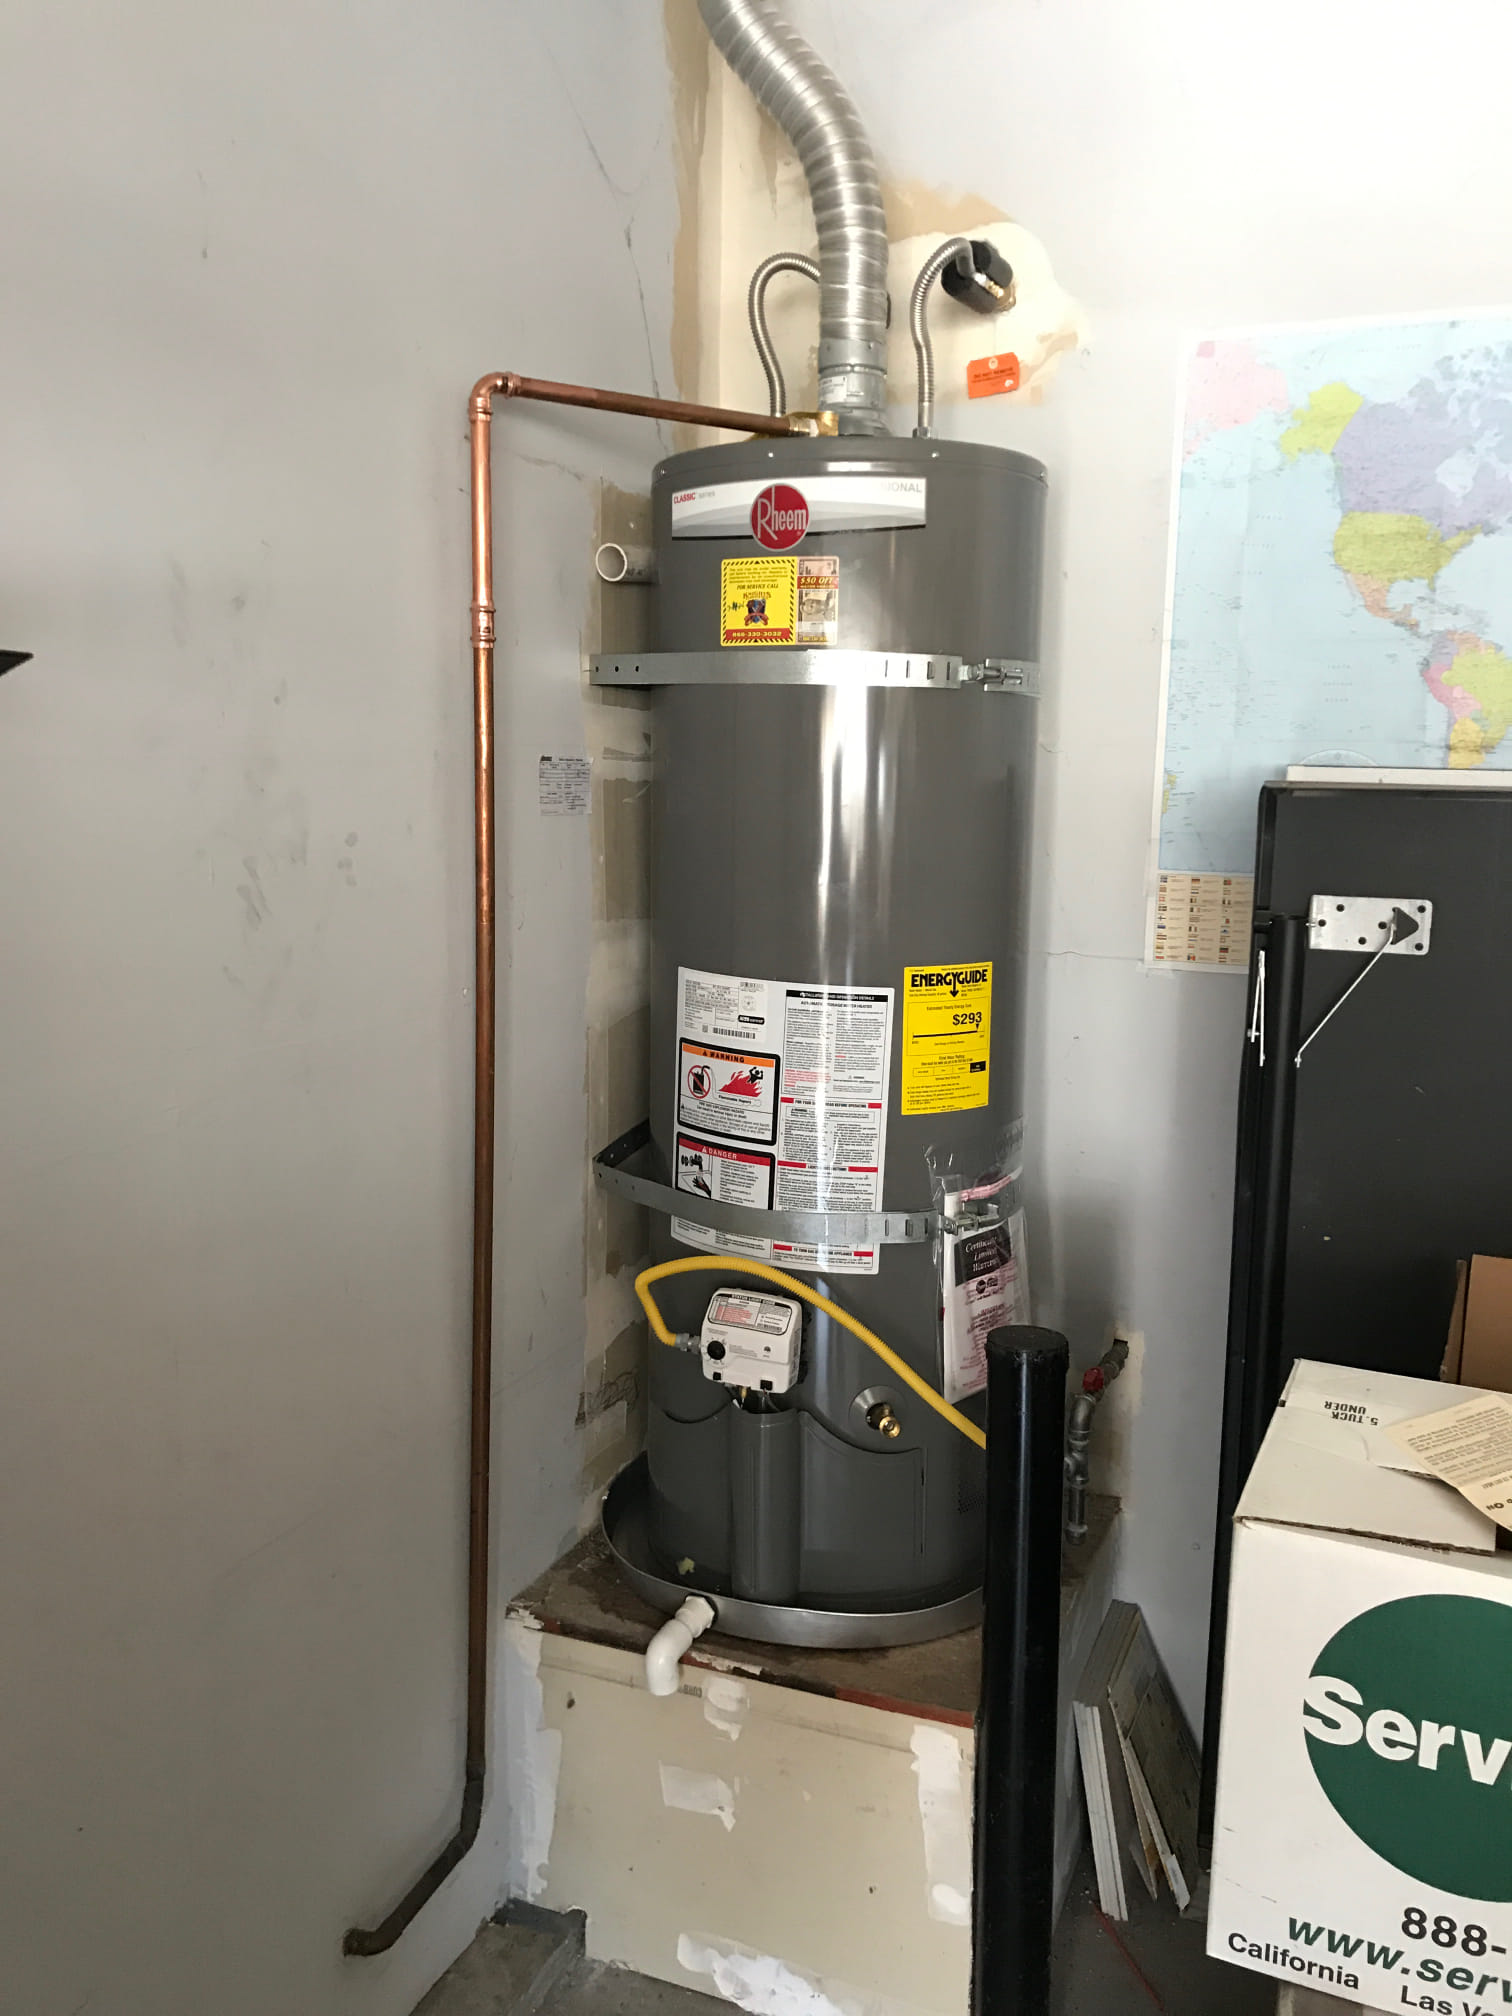 Leaking Water Heater Replacement - Stockton, CA